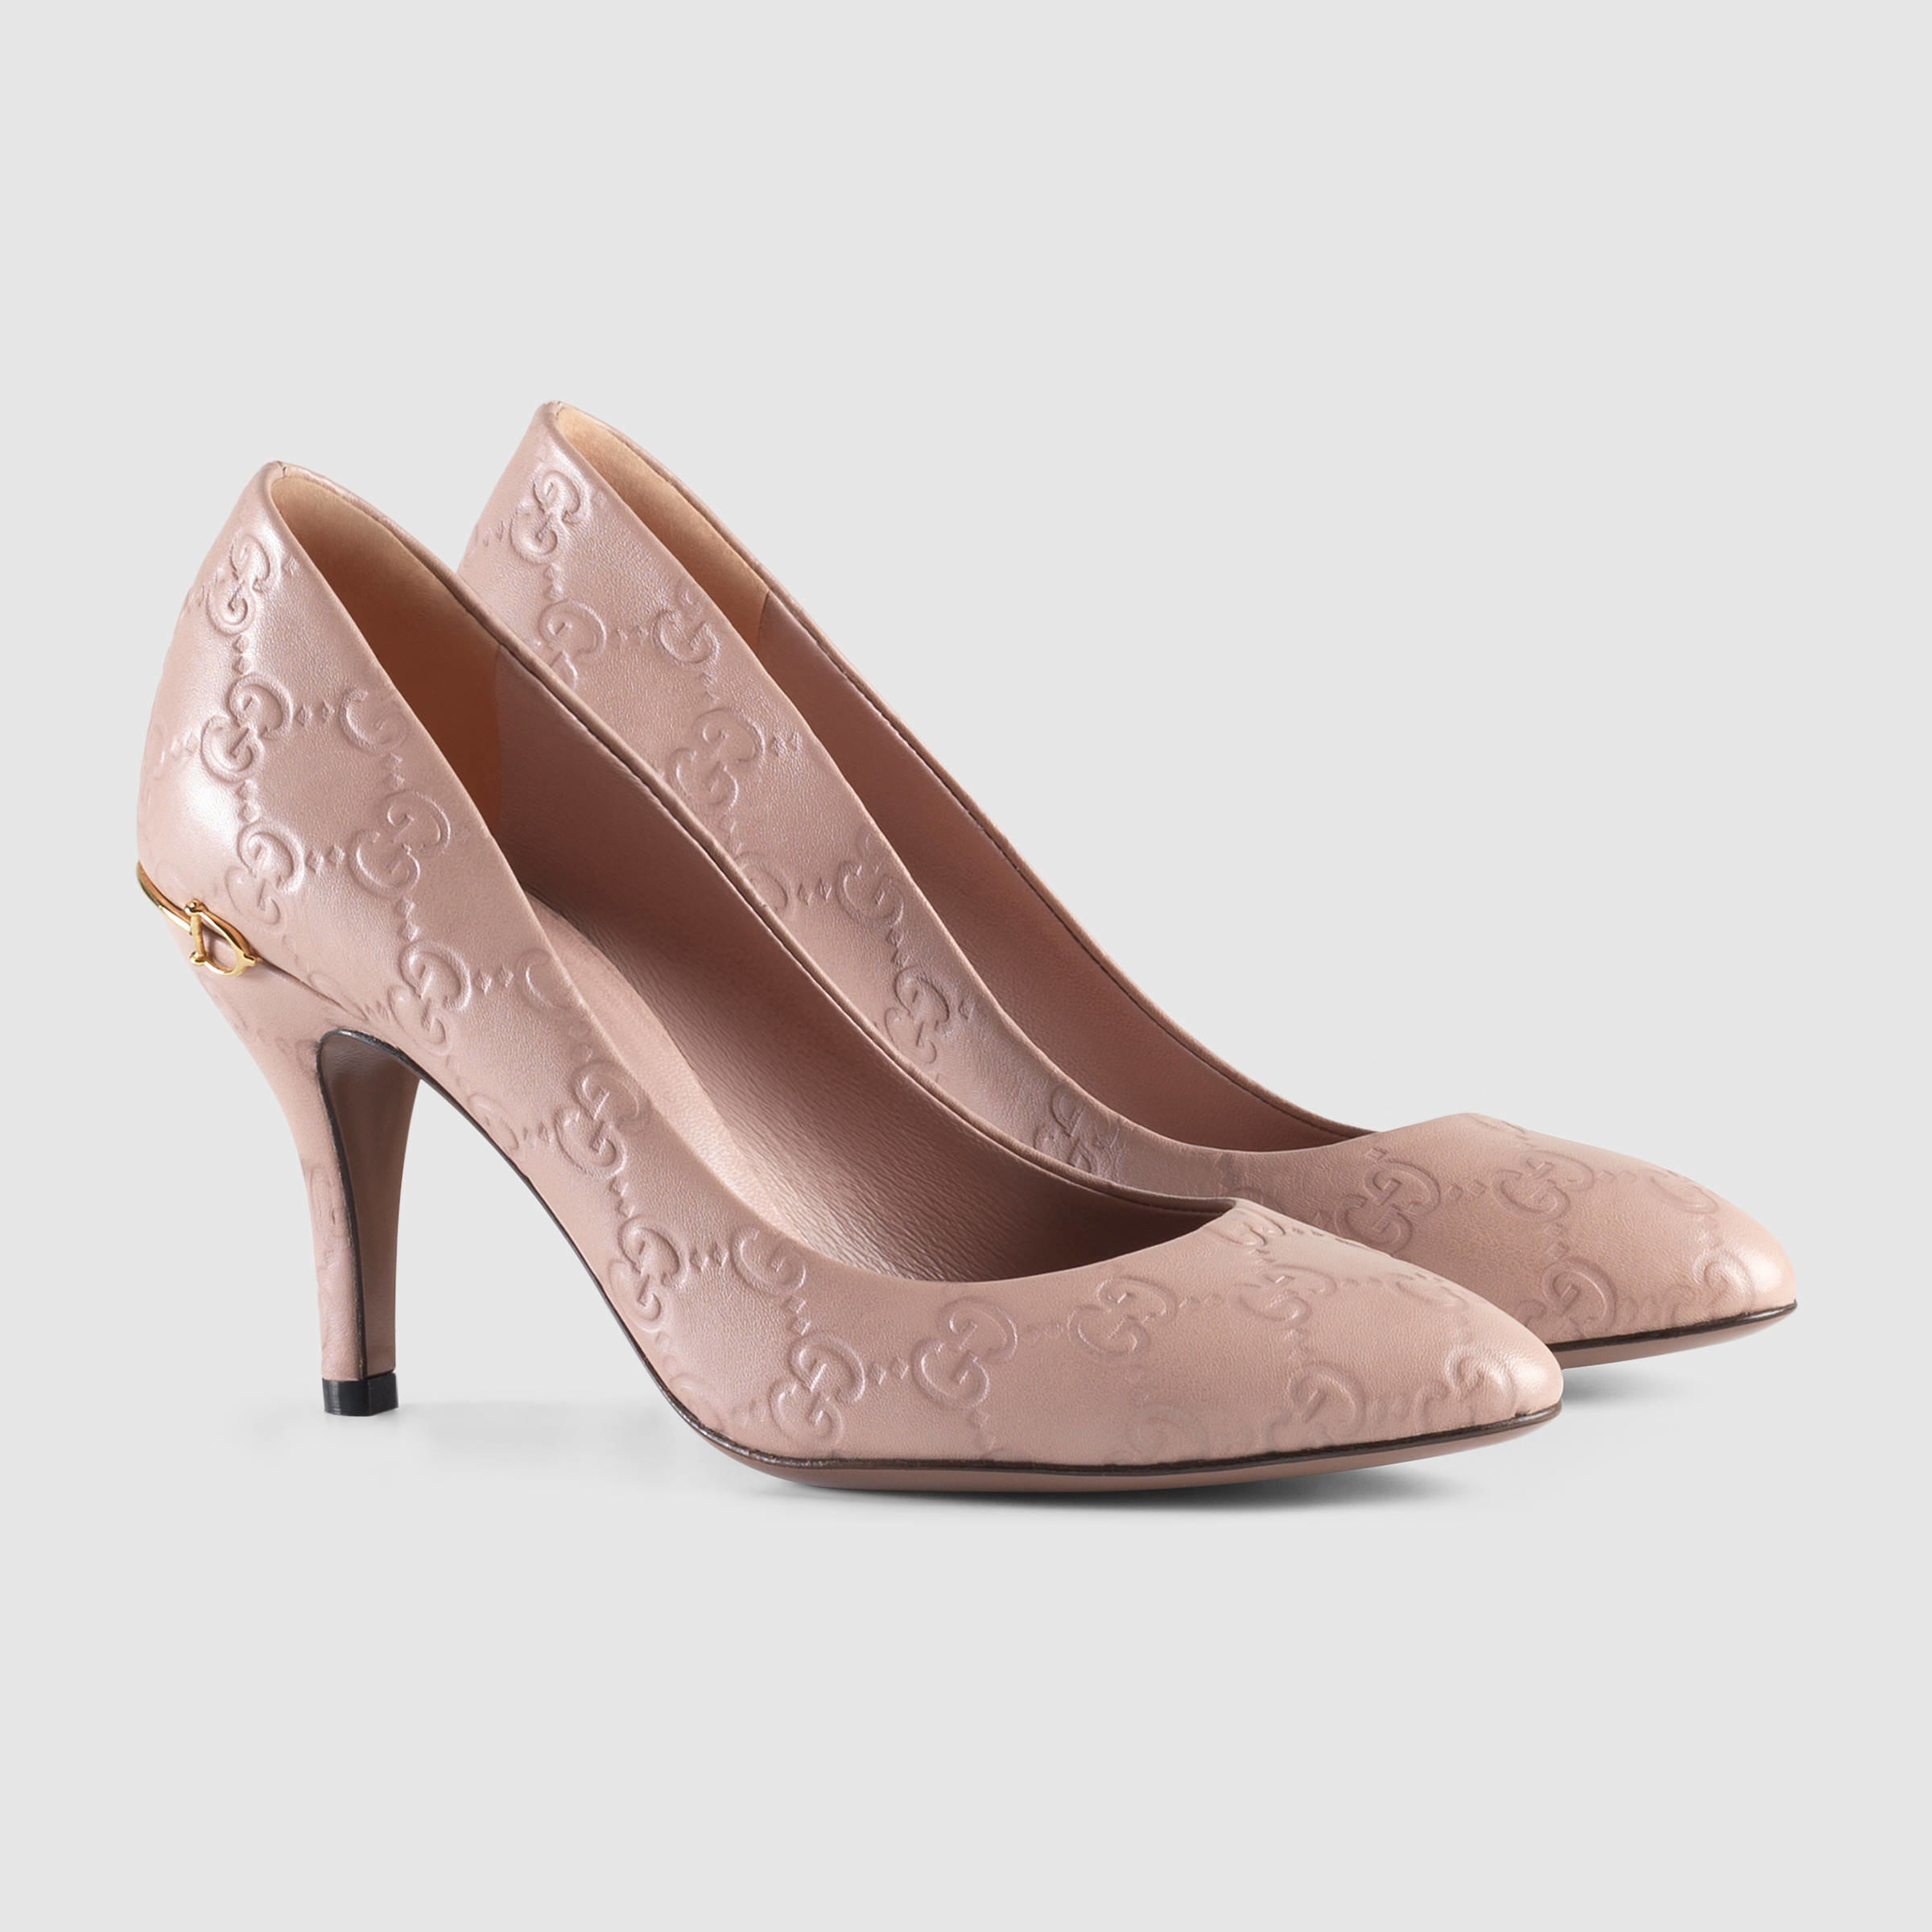 Gucci Guccissima Mid-heel Pump in Pink | Lyst